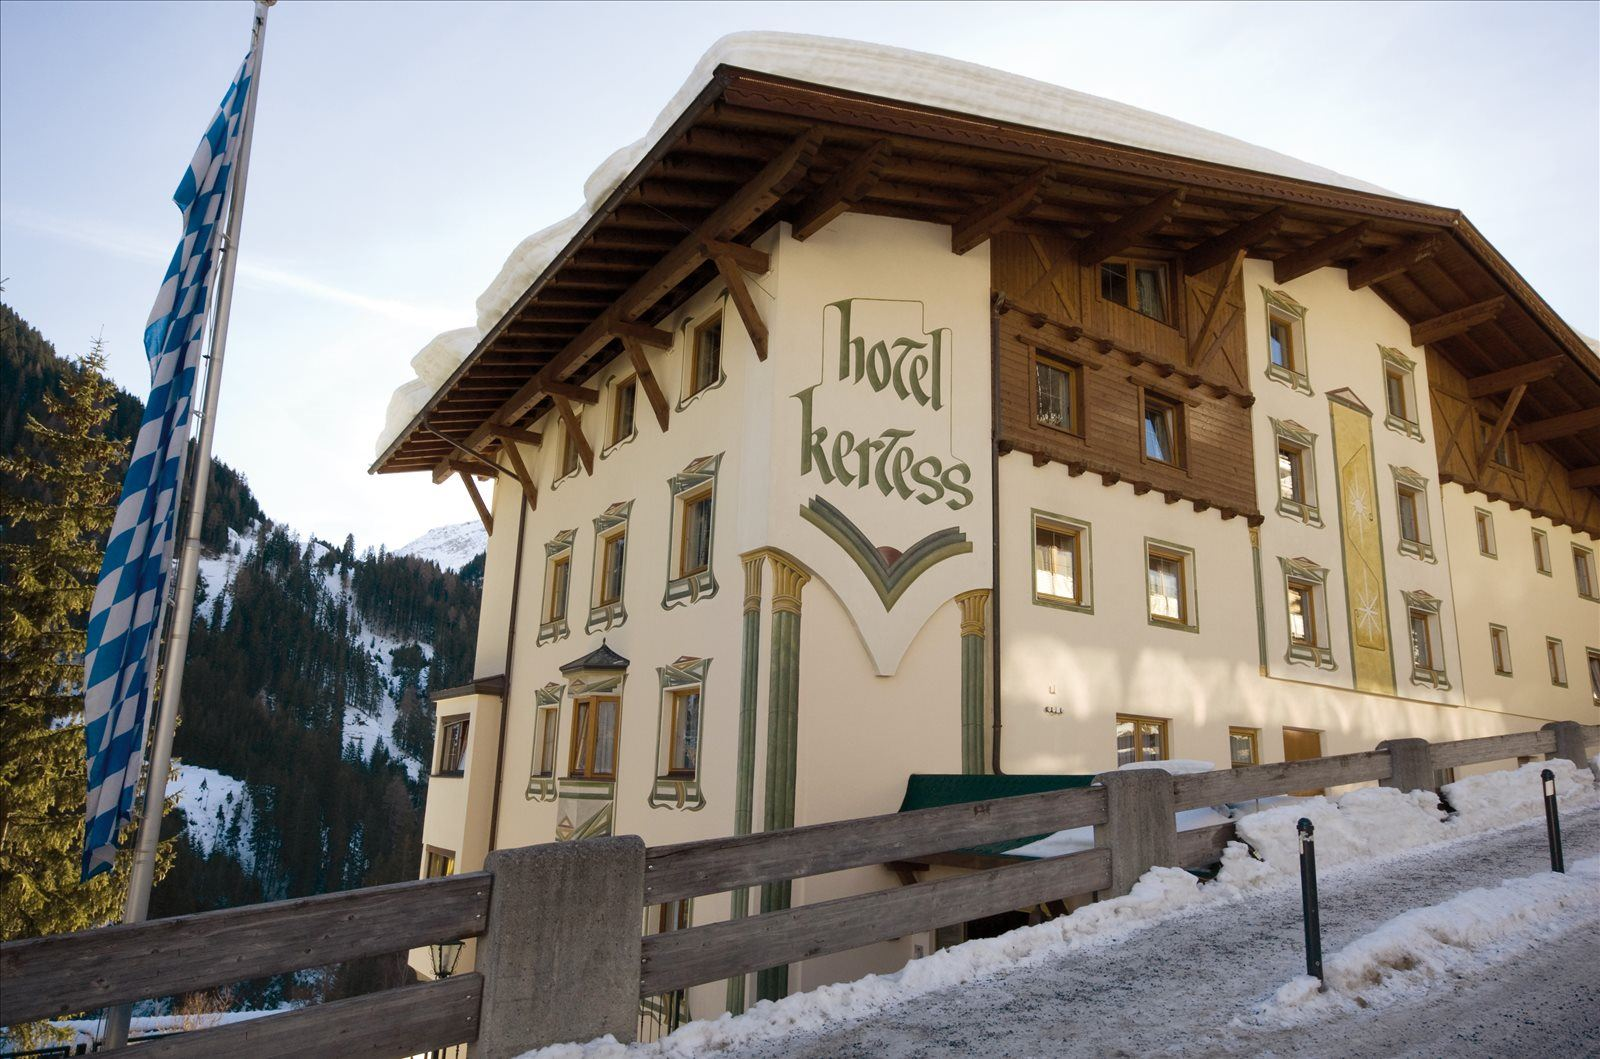 Hotel Kertess - St. Anton